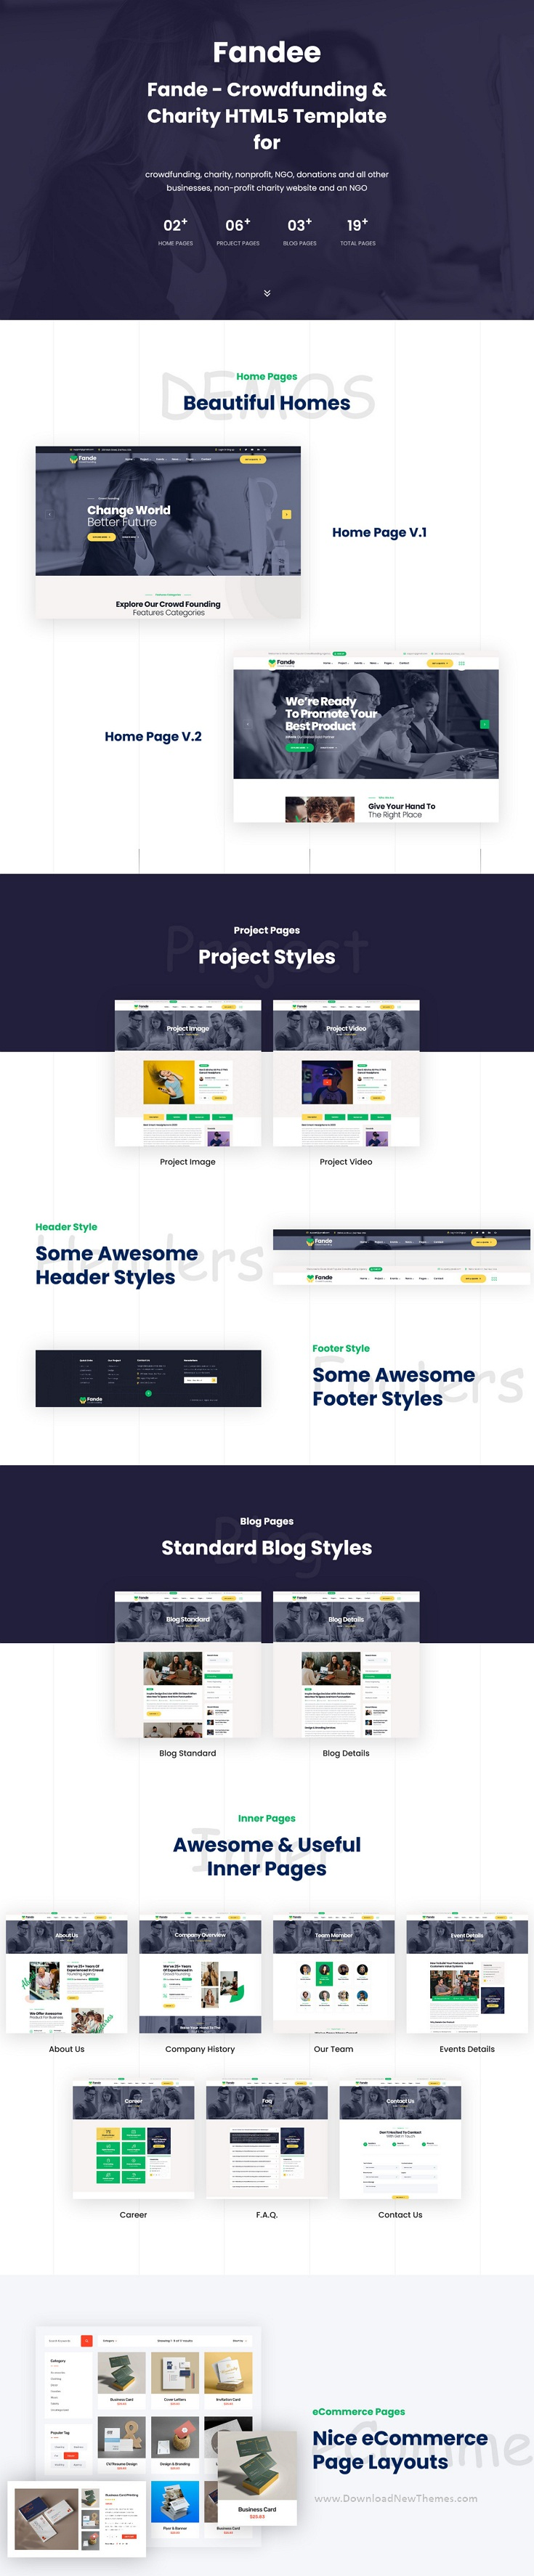 Crowdfunding and Charity HTML5 Template